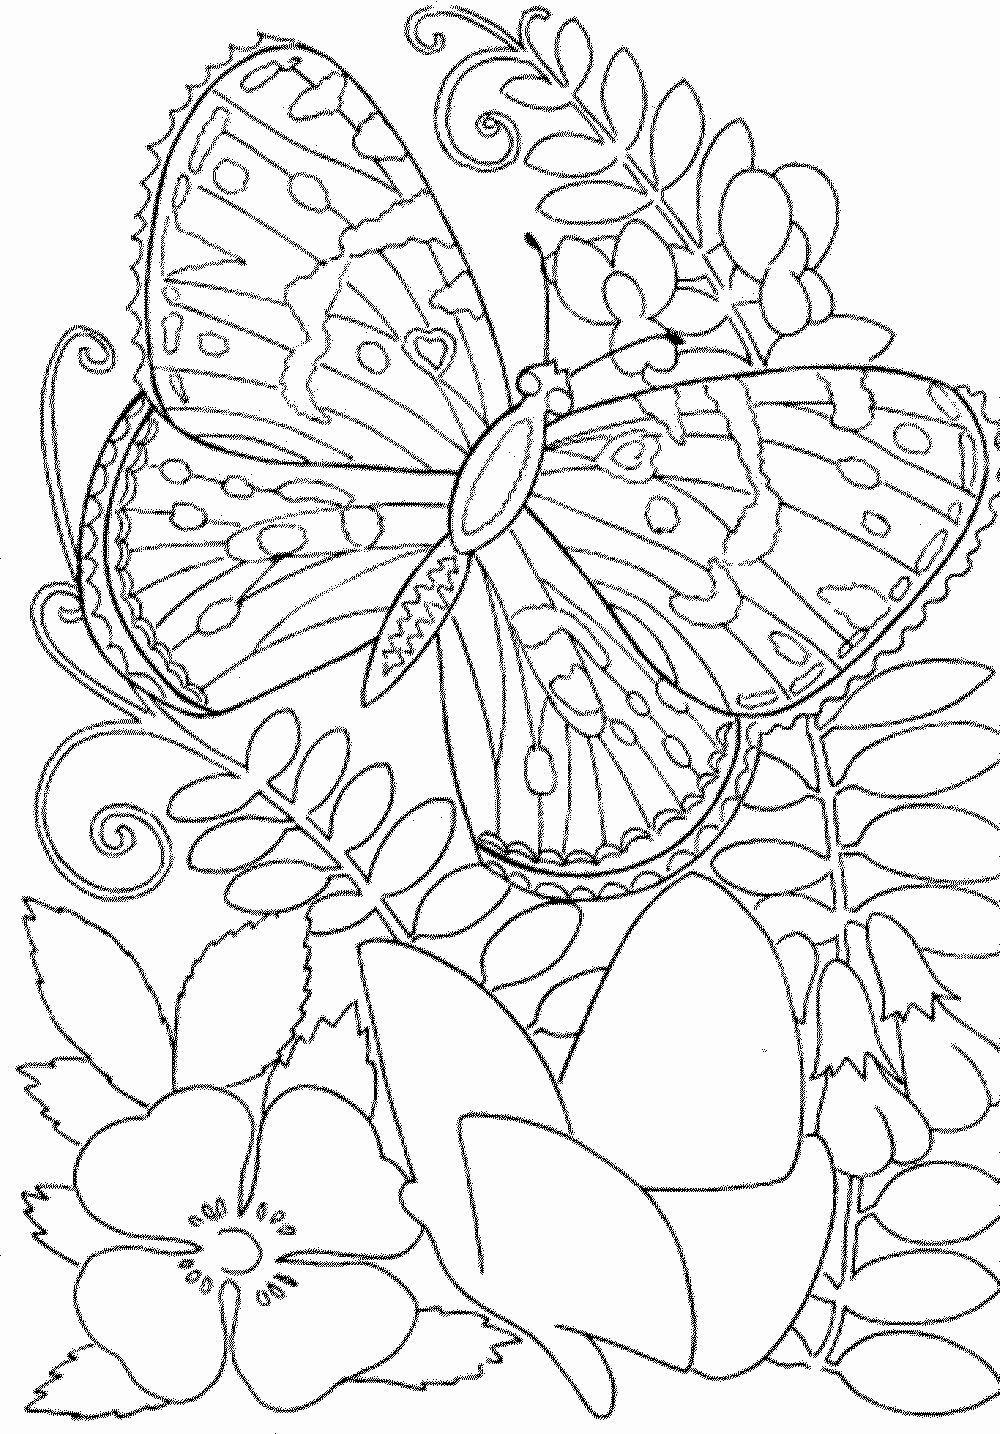 Pin By Leone Higgins On Vyshivka Biserom In 2020 Butterfly Coloring Page Free Online Coloring Spring Coloring Pages [ 1434 x 1000 Pixel ]